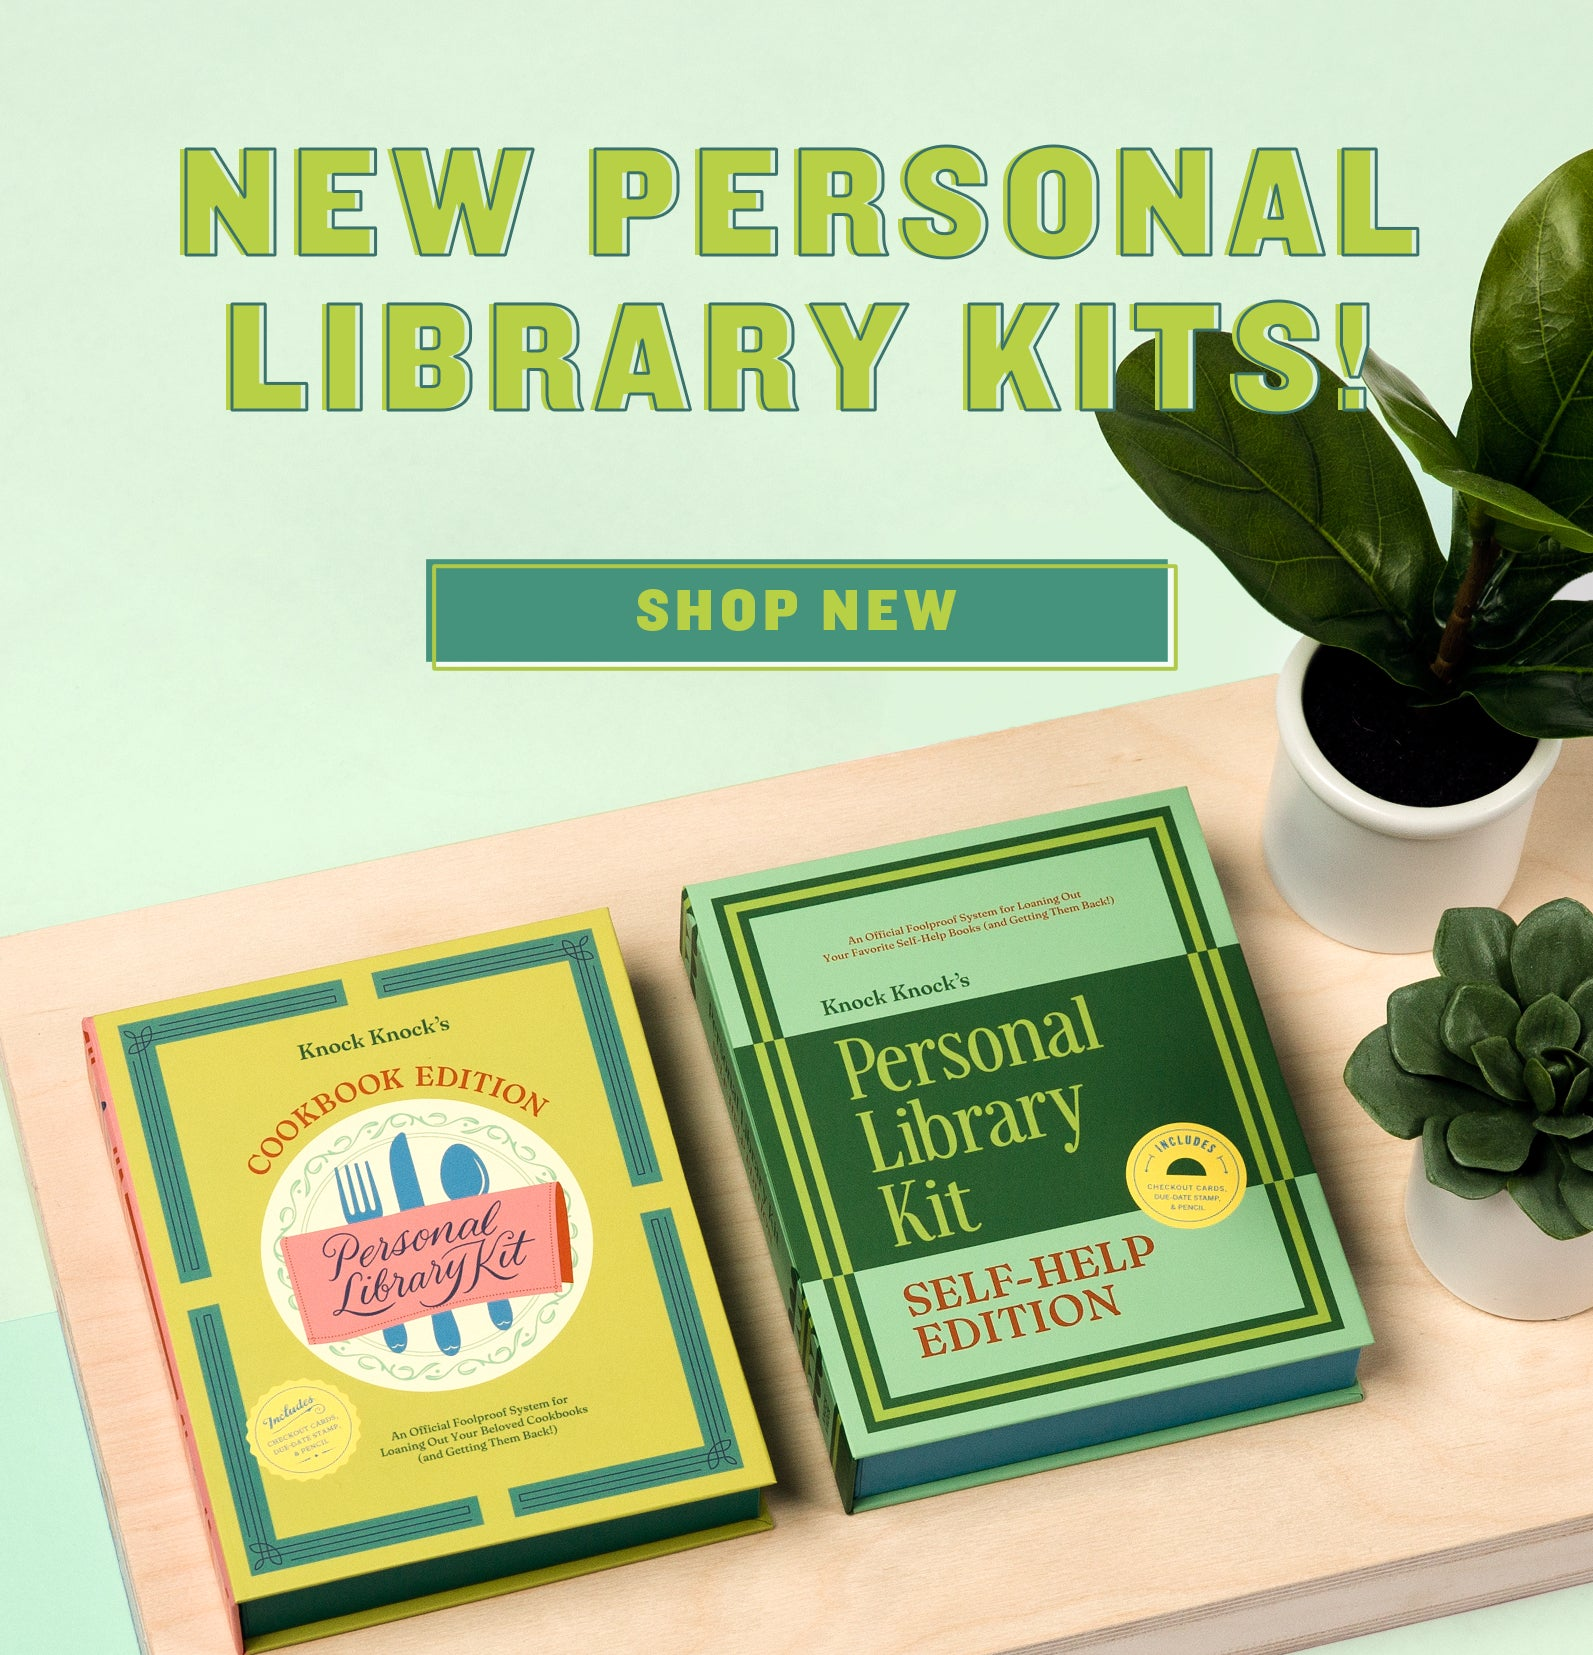 New! Personal Library Kits